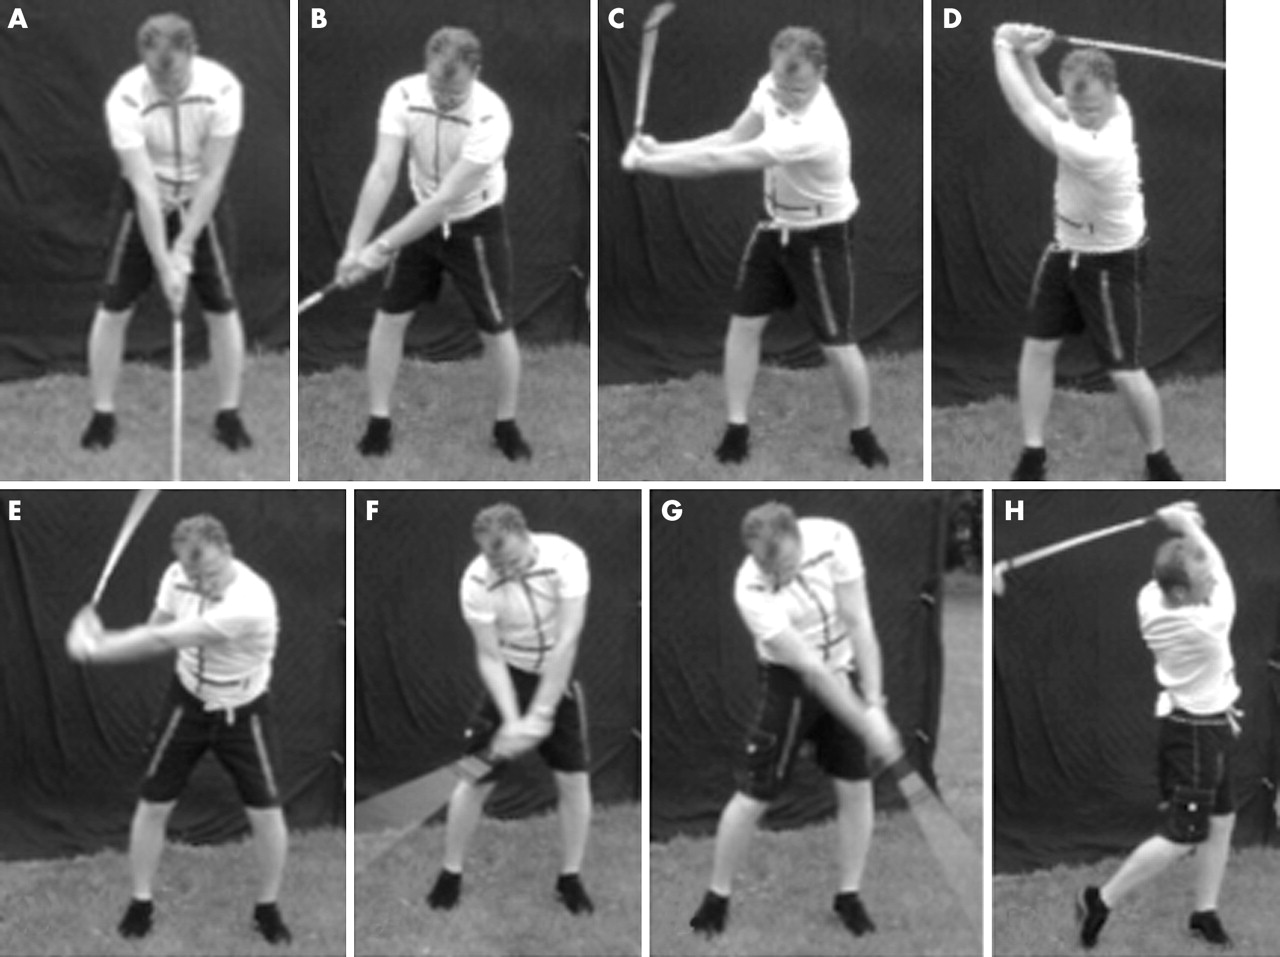 Muscle activity during the golf swing | British Journal of